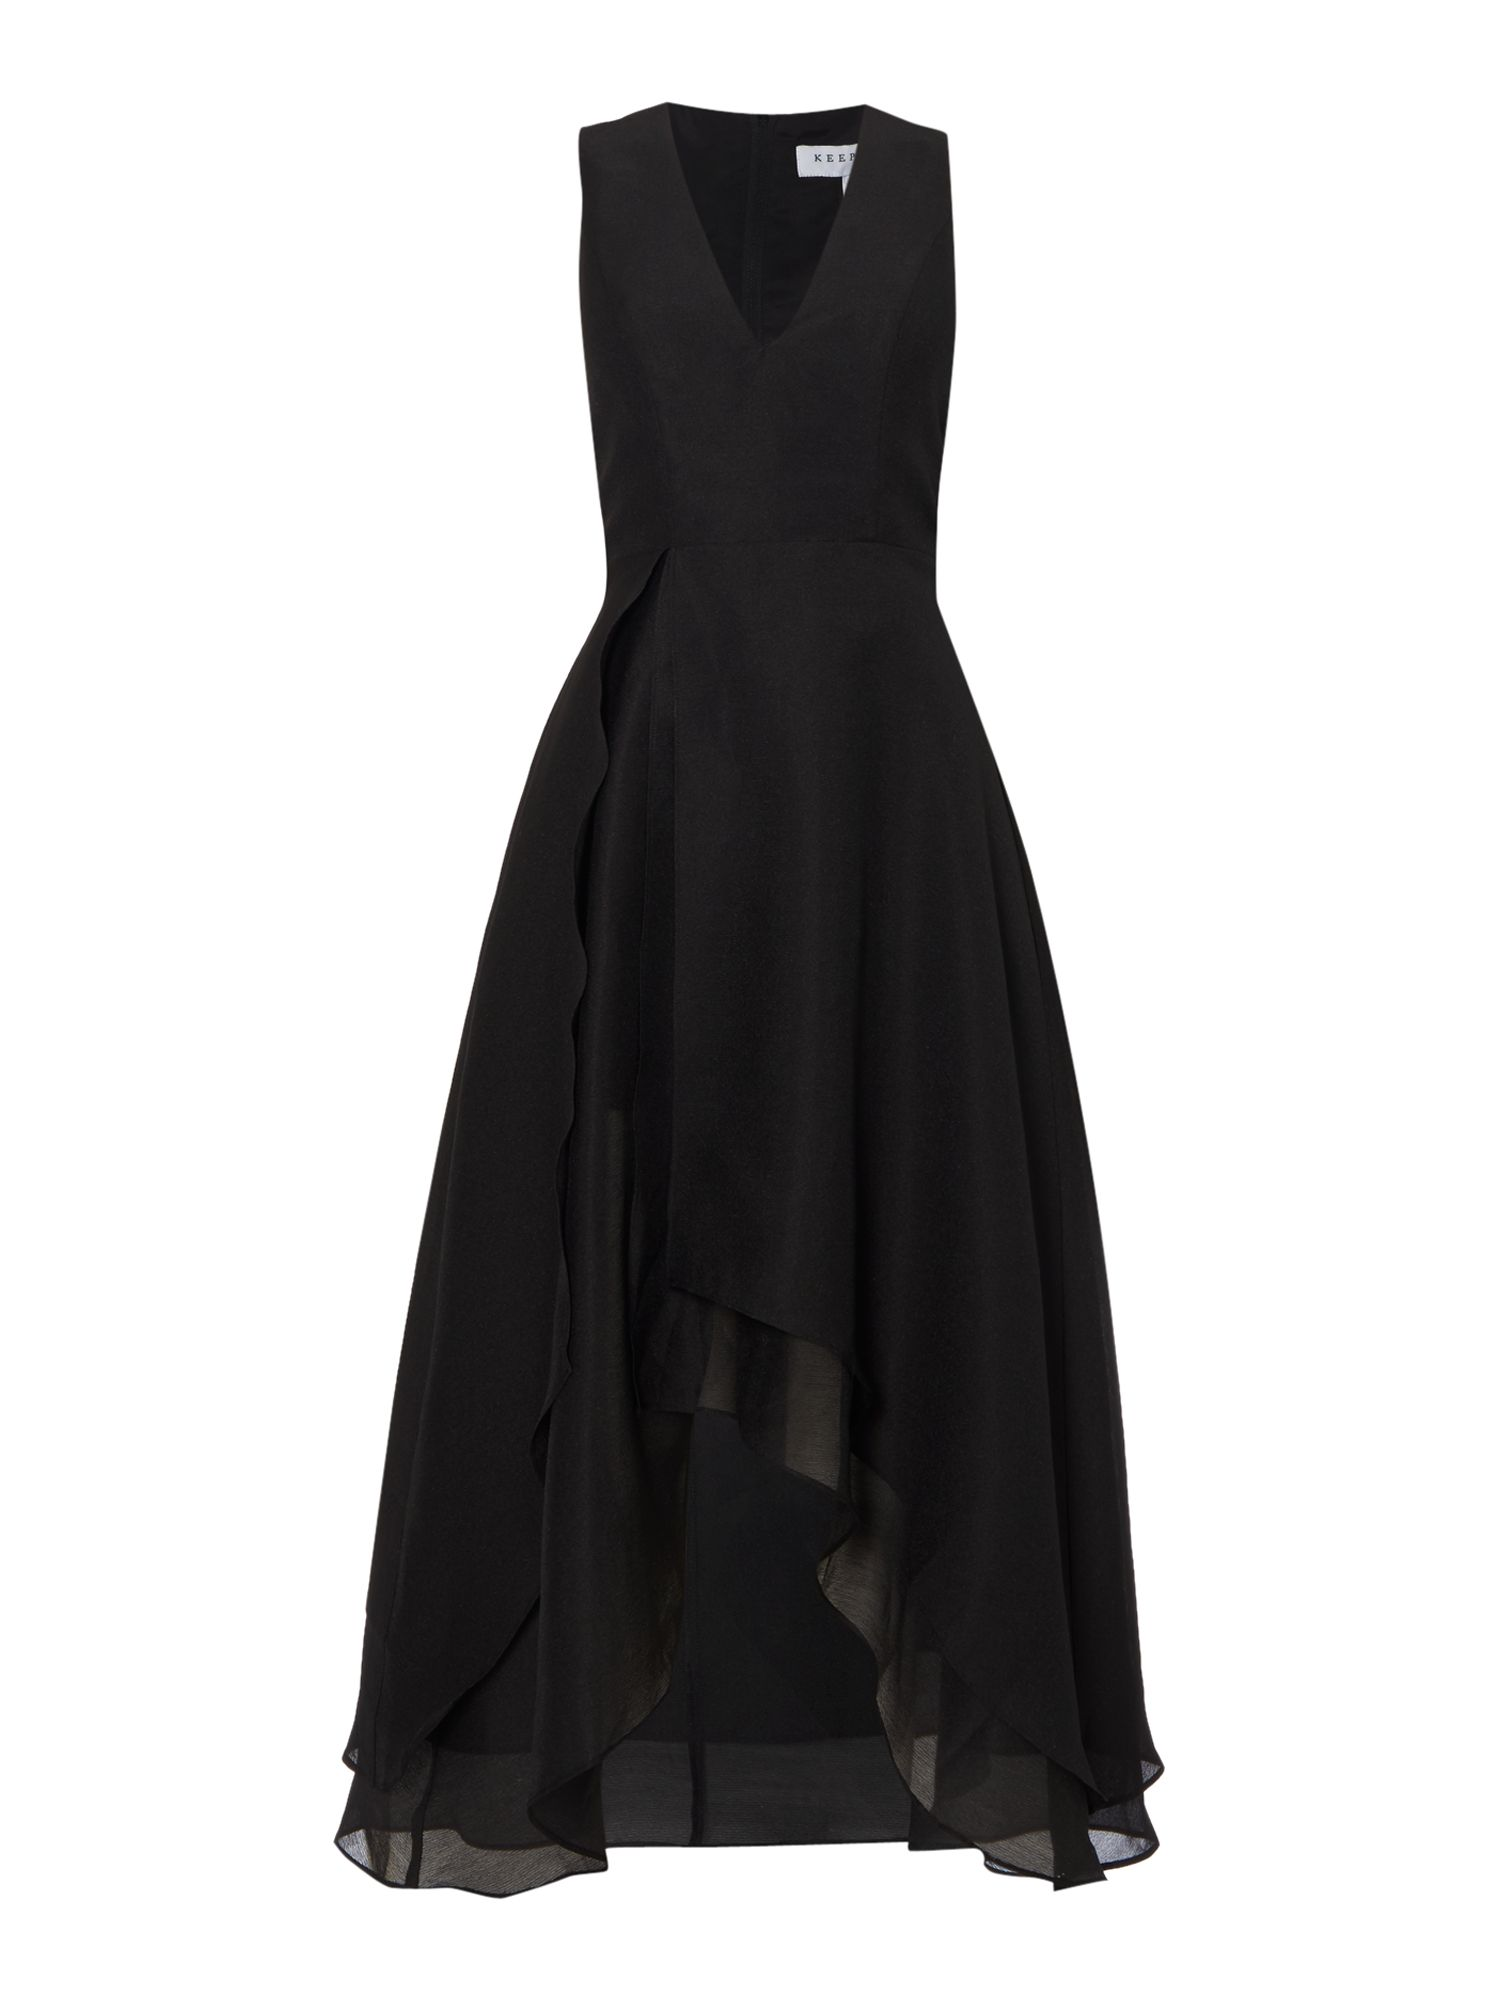 Keepsake Sleeveless V Neck Dip Hem Dress, Black